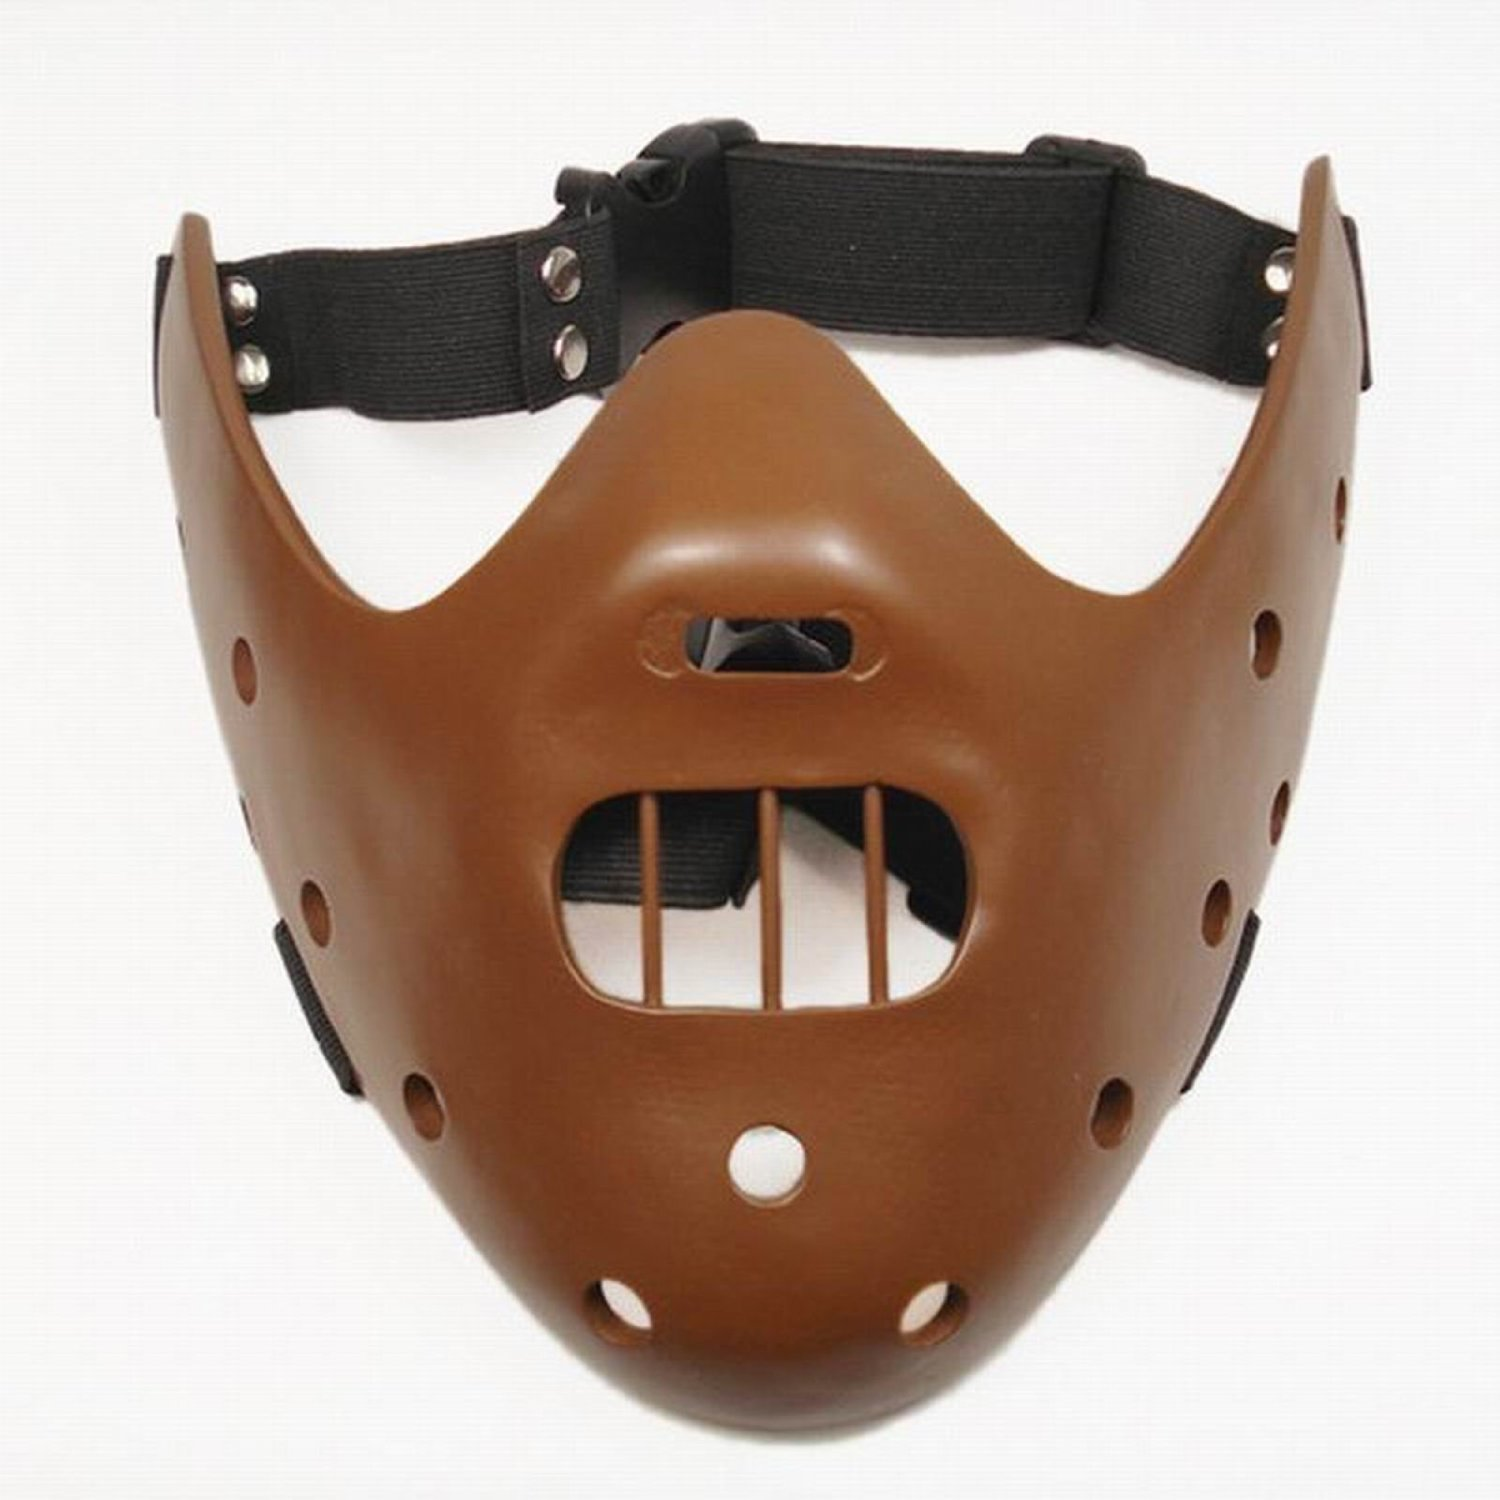 Hannibal Lecter Mask Replicacoffee